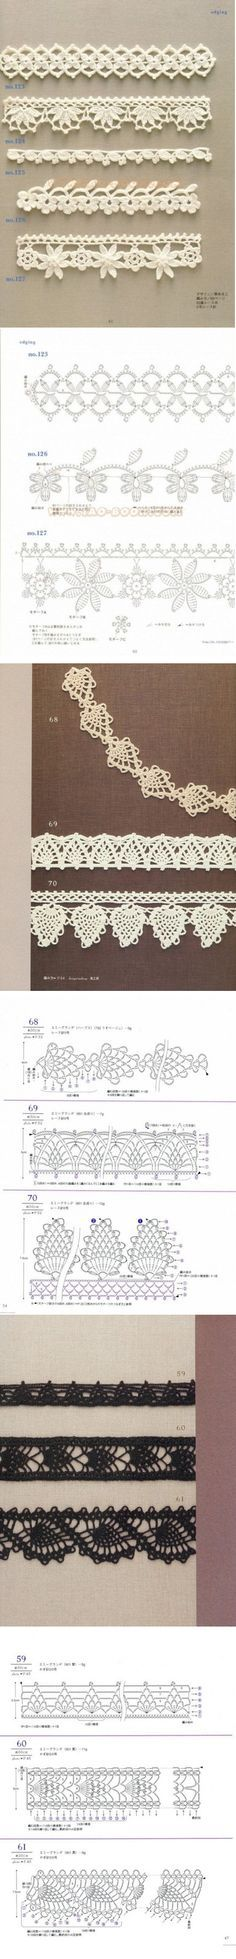 Ideas For Crochet Edging Patterns Lace Ganchillo Crochet Boarders, Crochet Edging Patterns, Crochet Lace Edging, Crochet Diagram, Crochet Chart, Crochet Doilies, Crochet Flowers, Knitting Patterns, Crochet Edgings